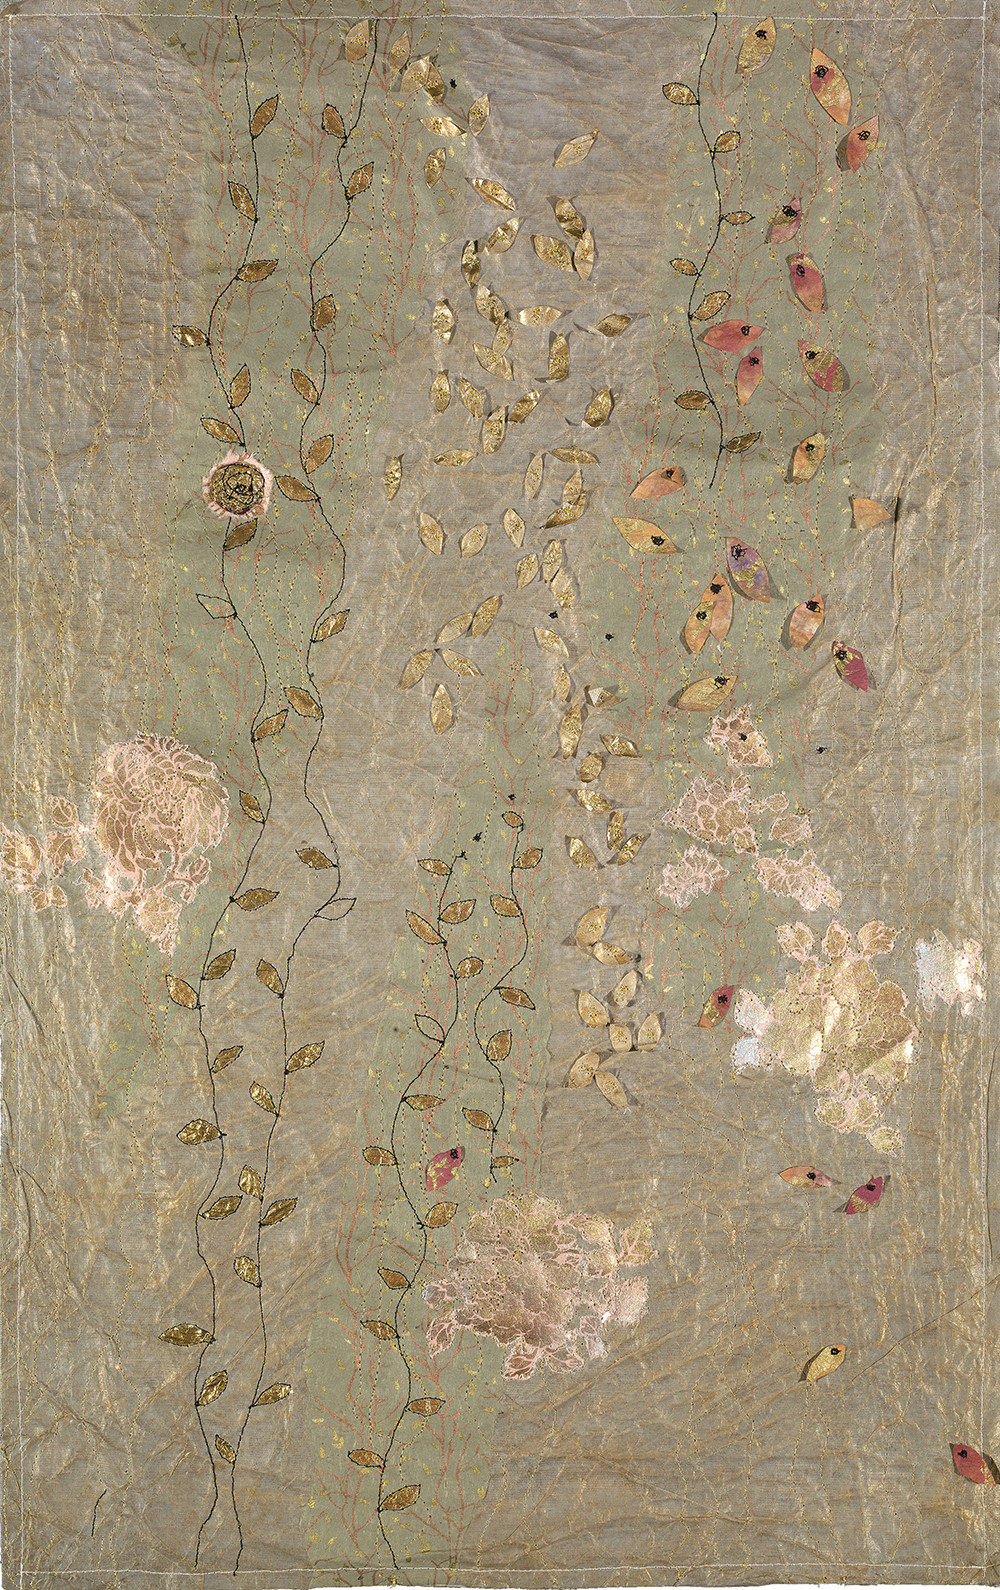 """Flowers with Leaves Falling, 28""""X18"""" Machine stitching, paper detritus, acrylic, 2017"""